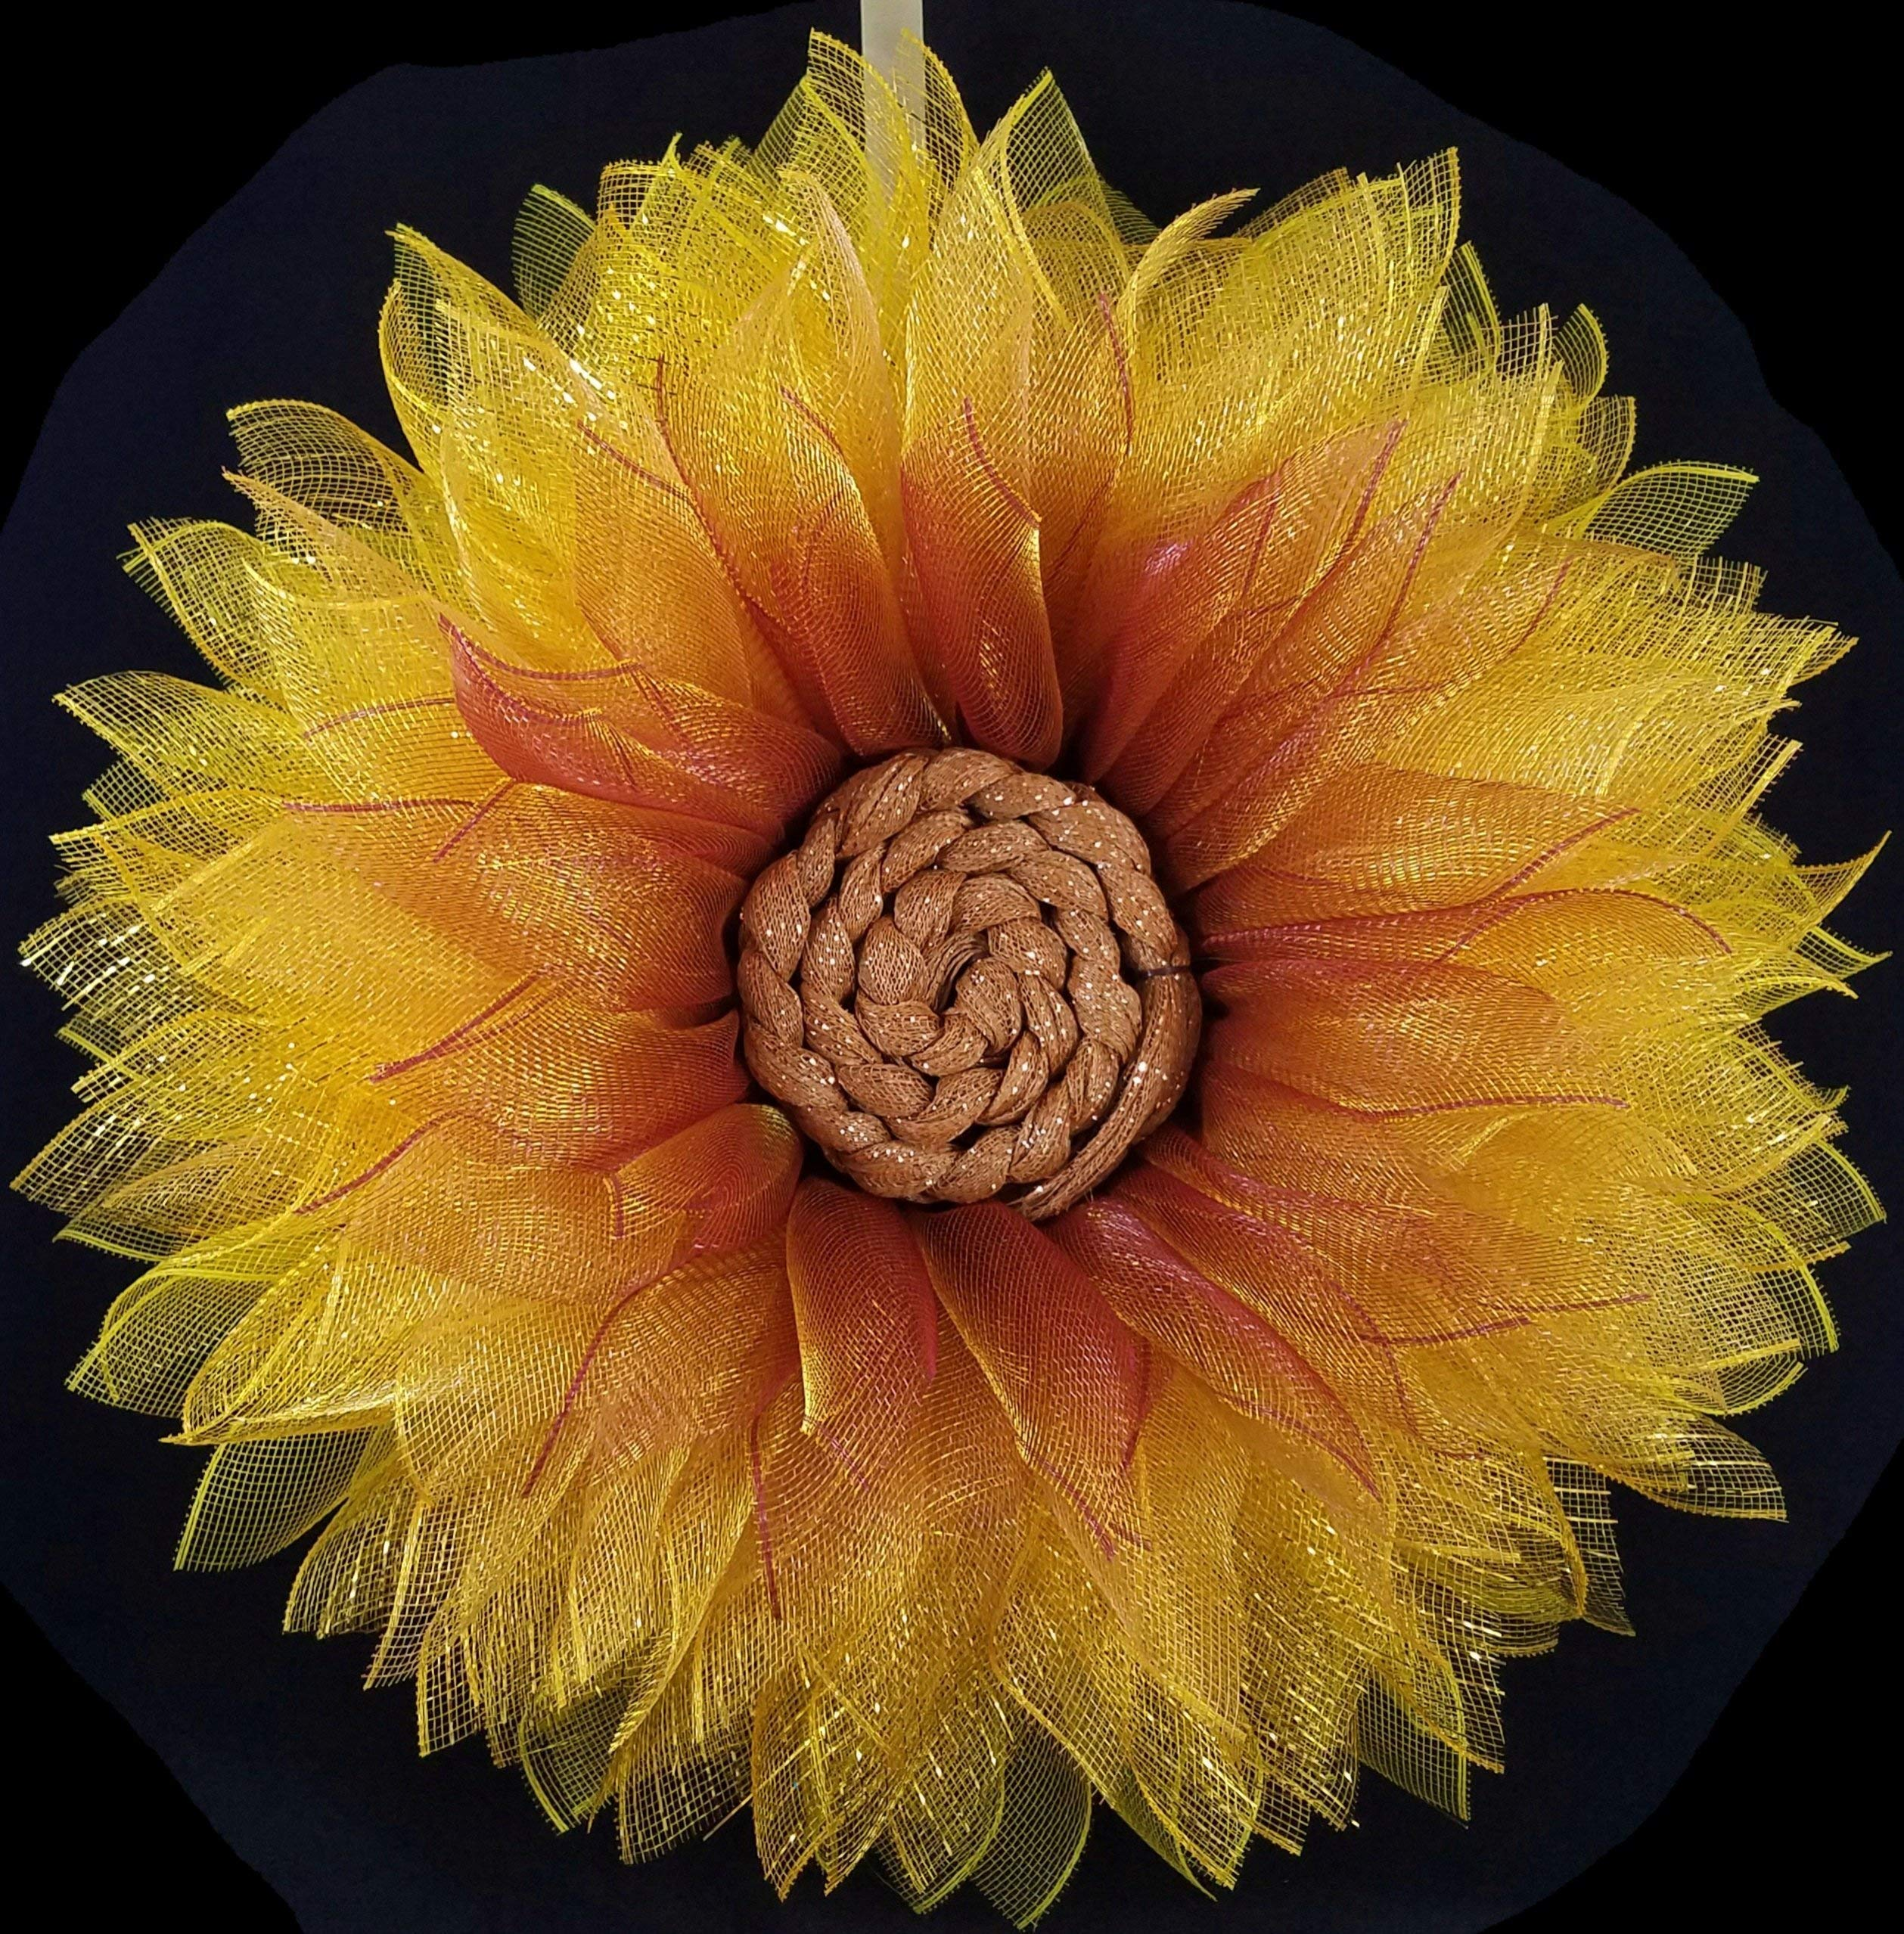 Fall-Wreath-for-Front-Door-Deco-Mesh-SunFlower-Yellow-Gold-Burgundy-Autumn-Home-Wall-Decor-26-inch